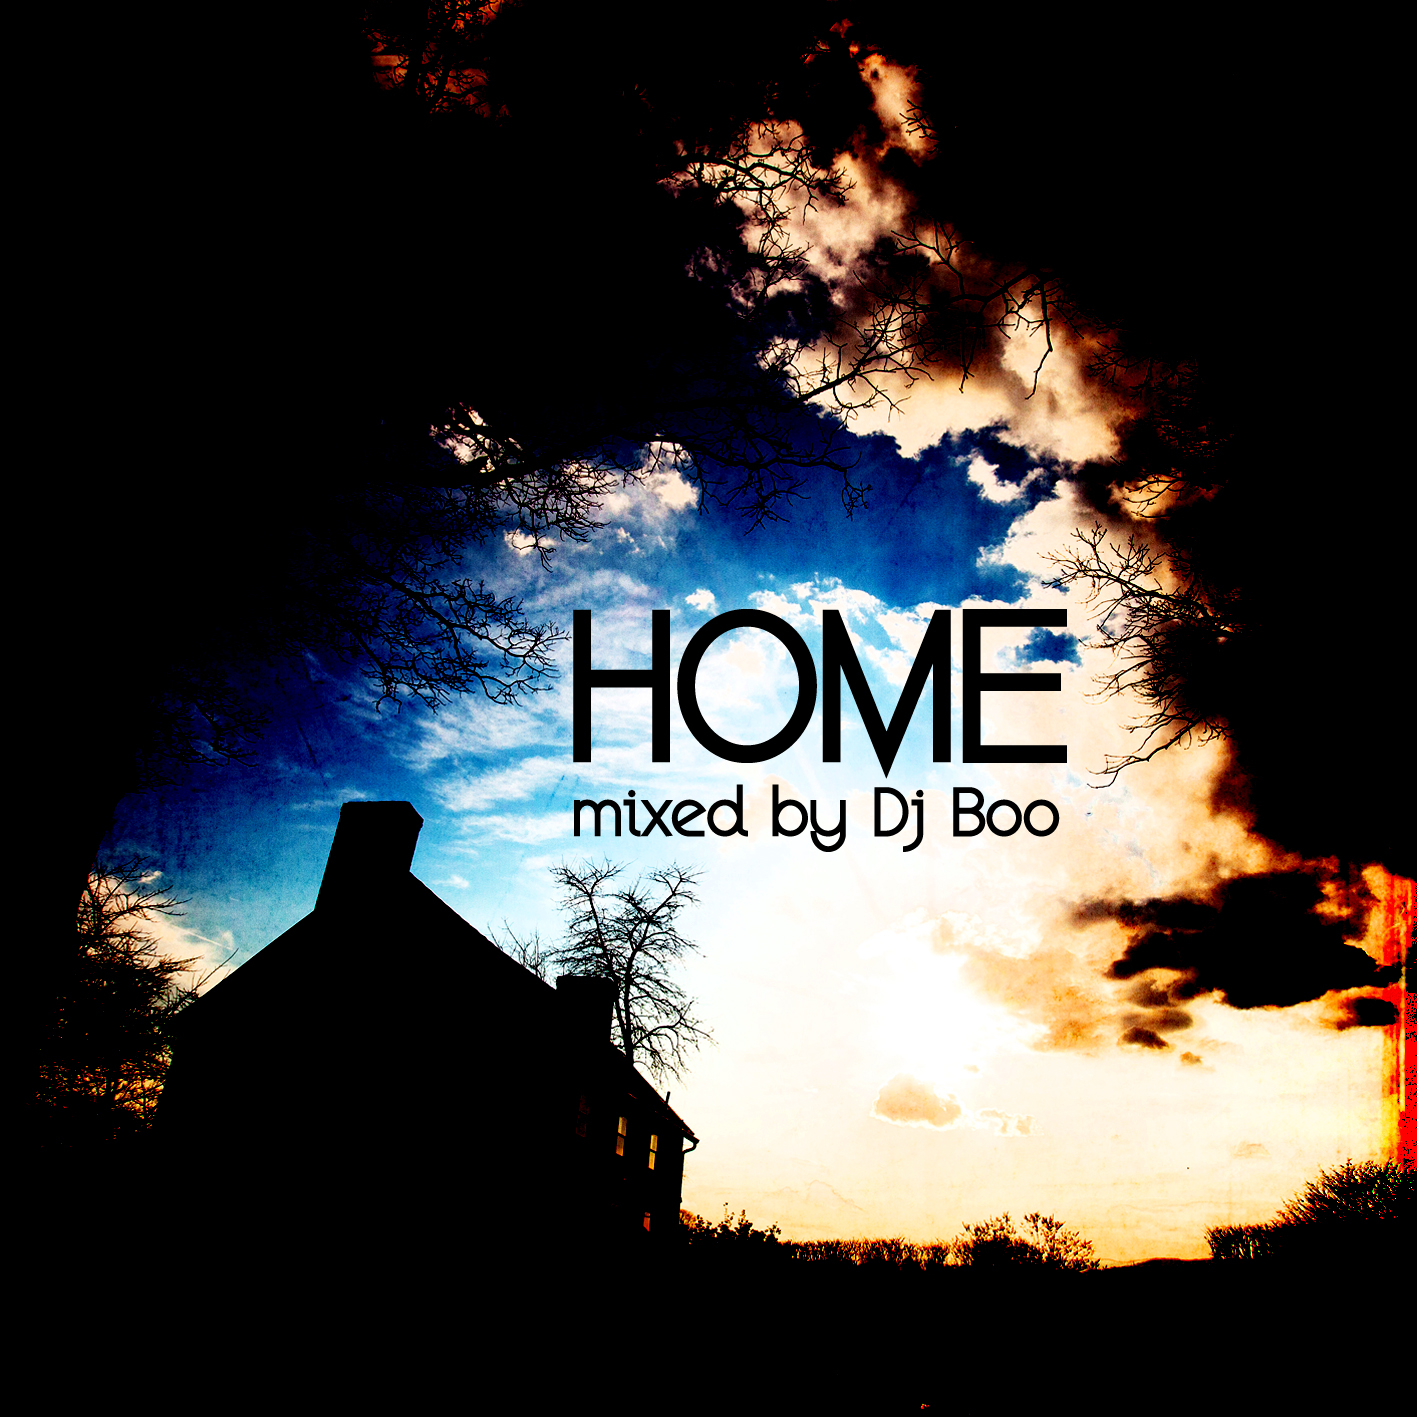 """Nomadic Wax, Housing is a Human Right & Dj Boo """"Home"""" (U.S.A/World)"""